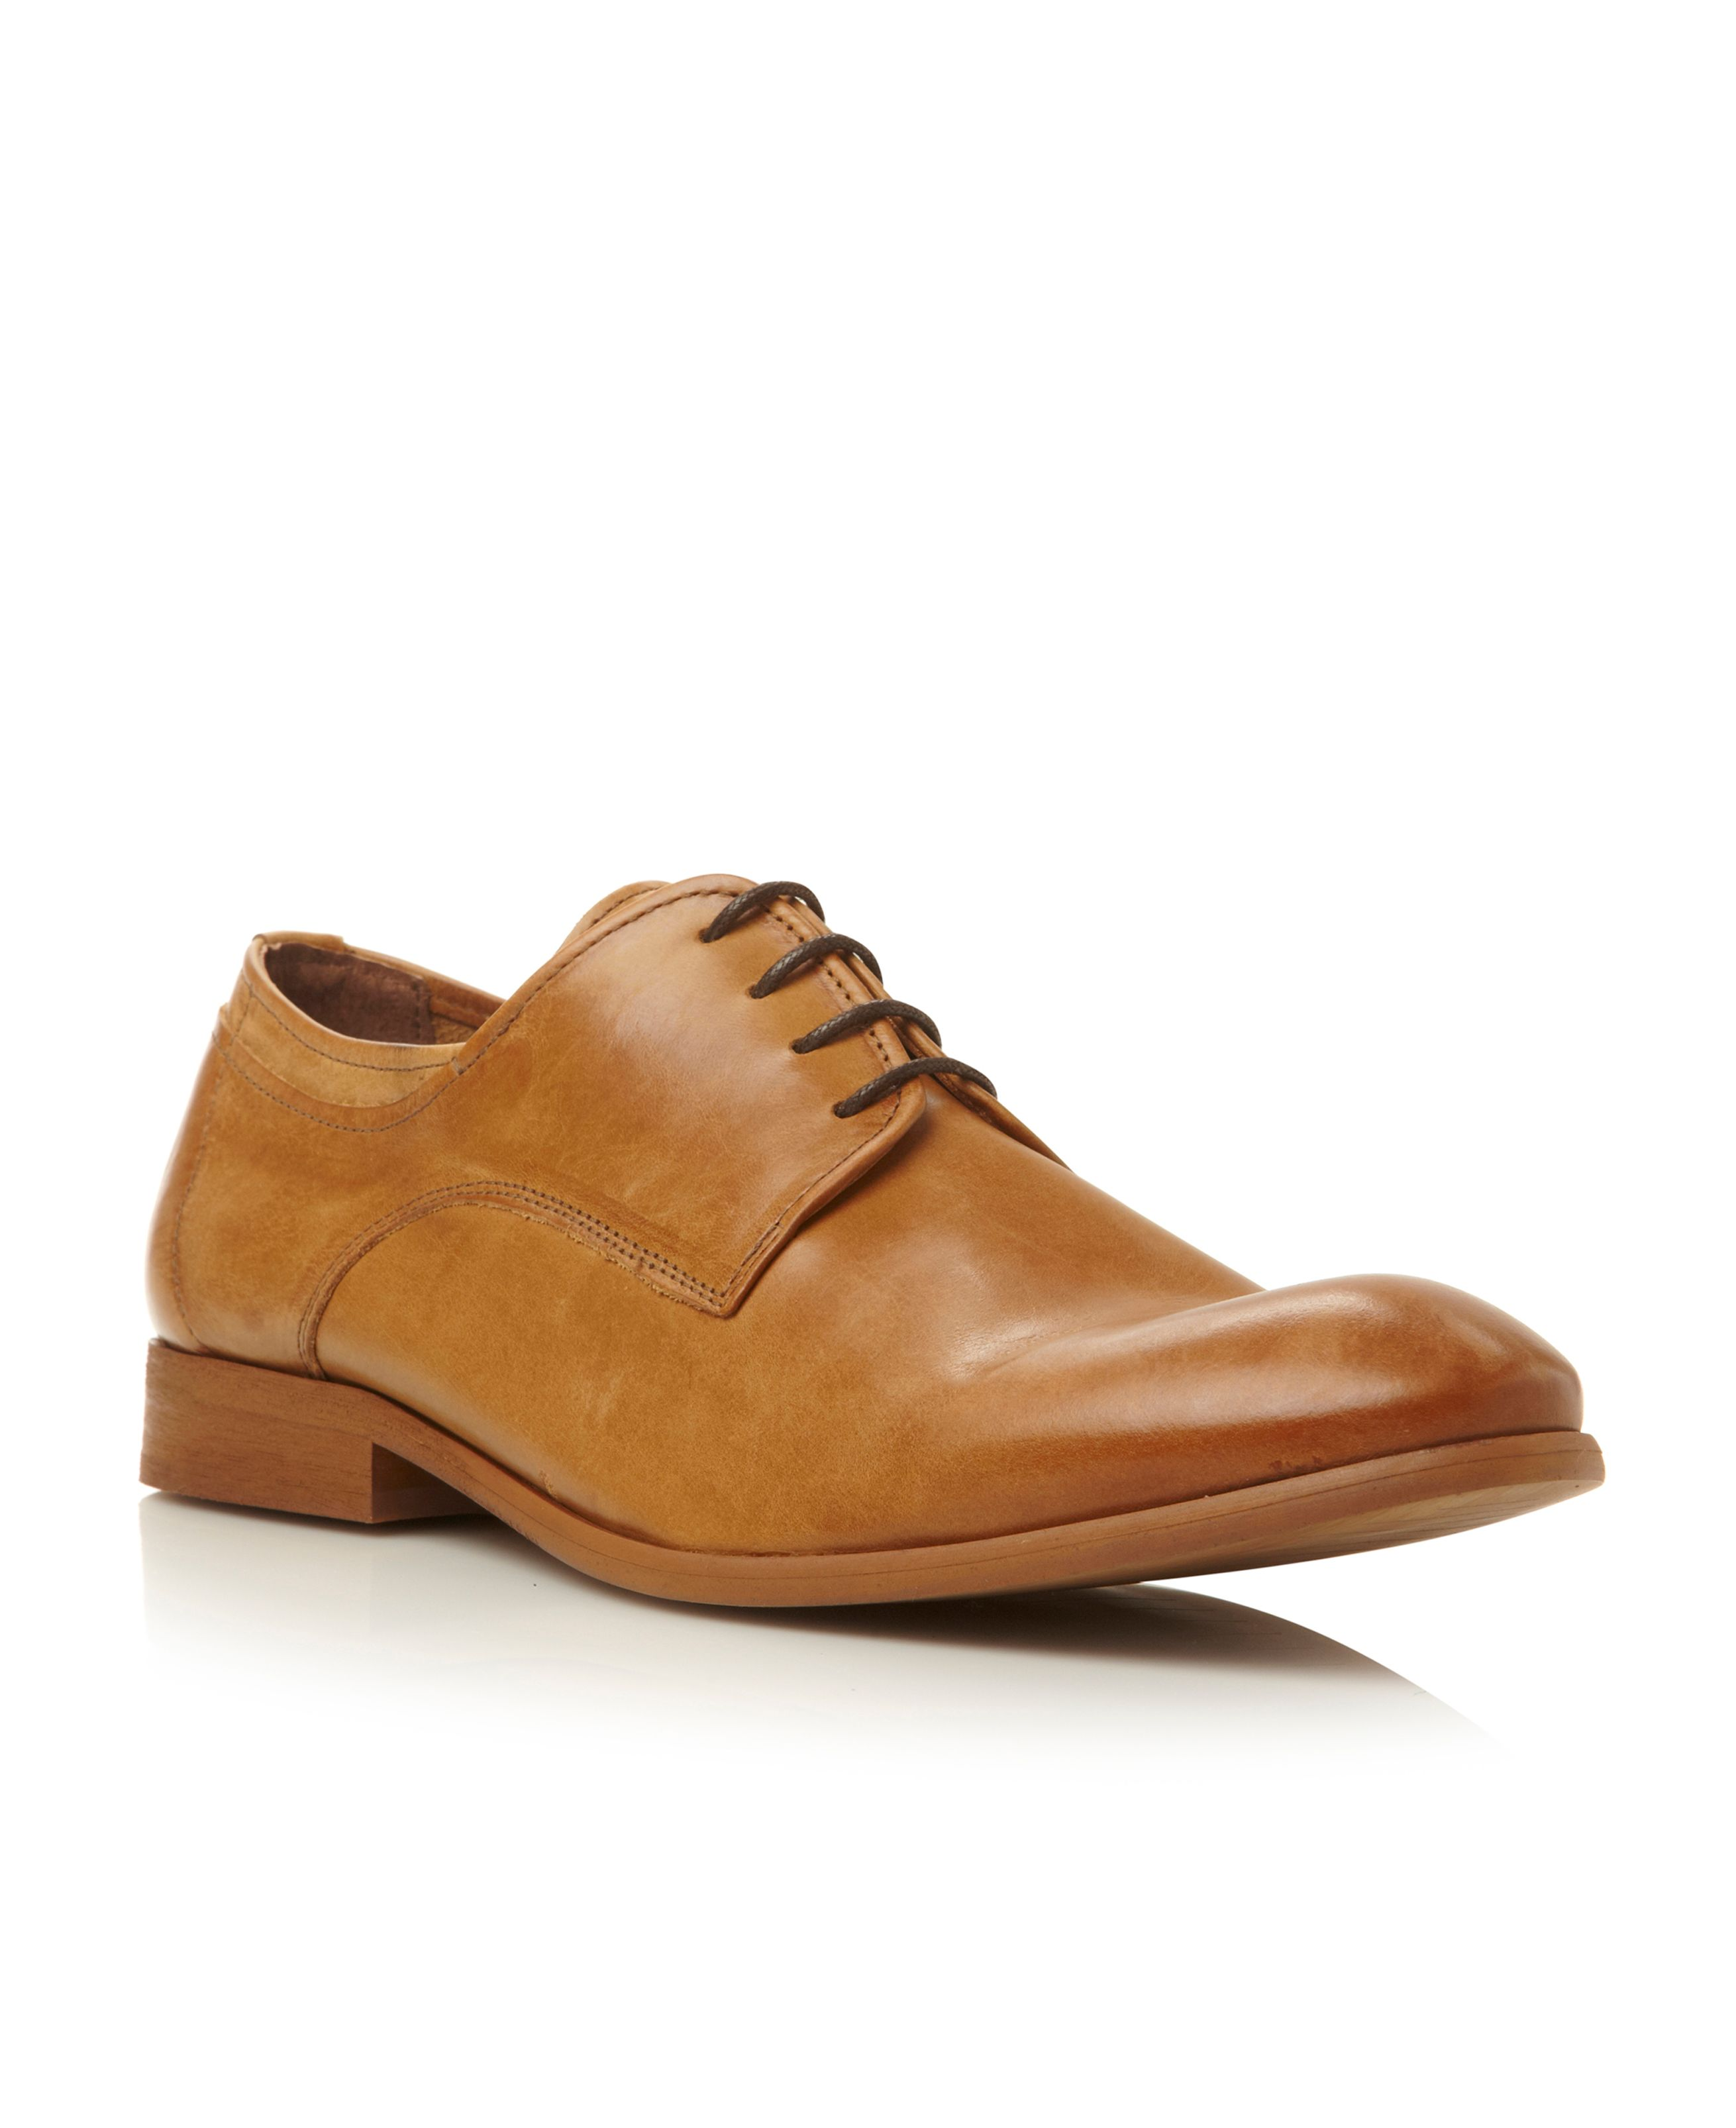 Camberwell plain gibson lace up